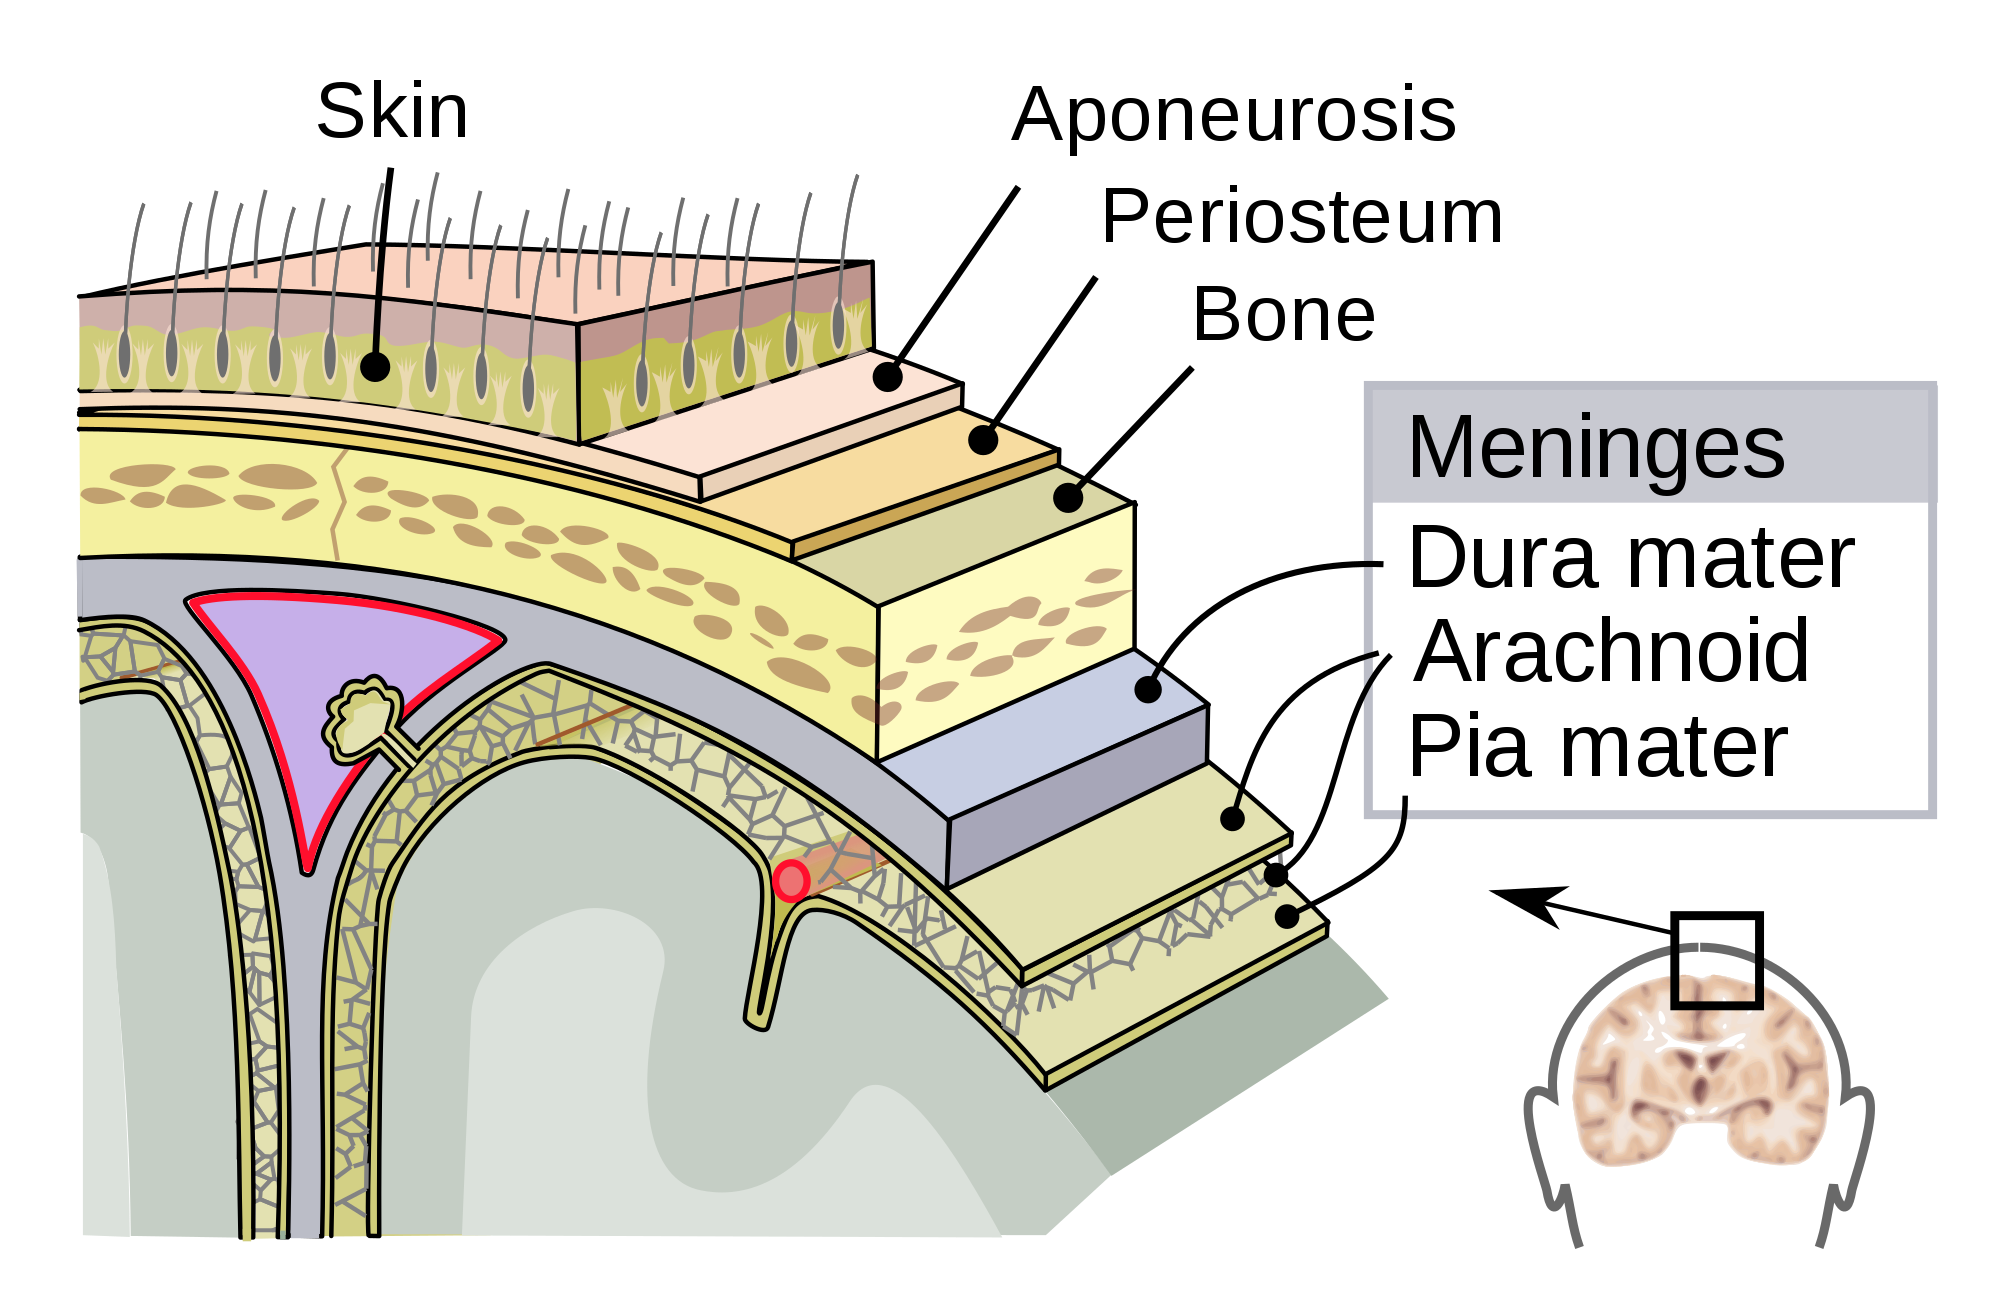 Mater drawing. Meninges wikipedia the dura